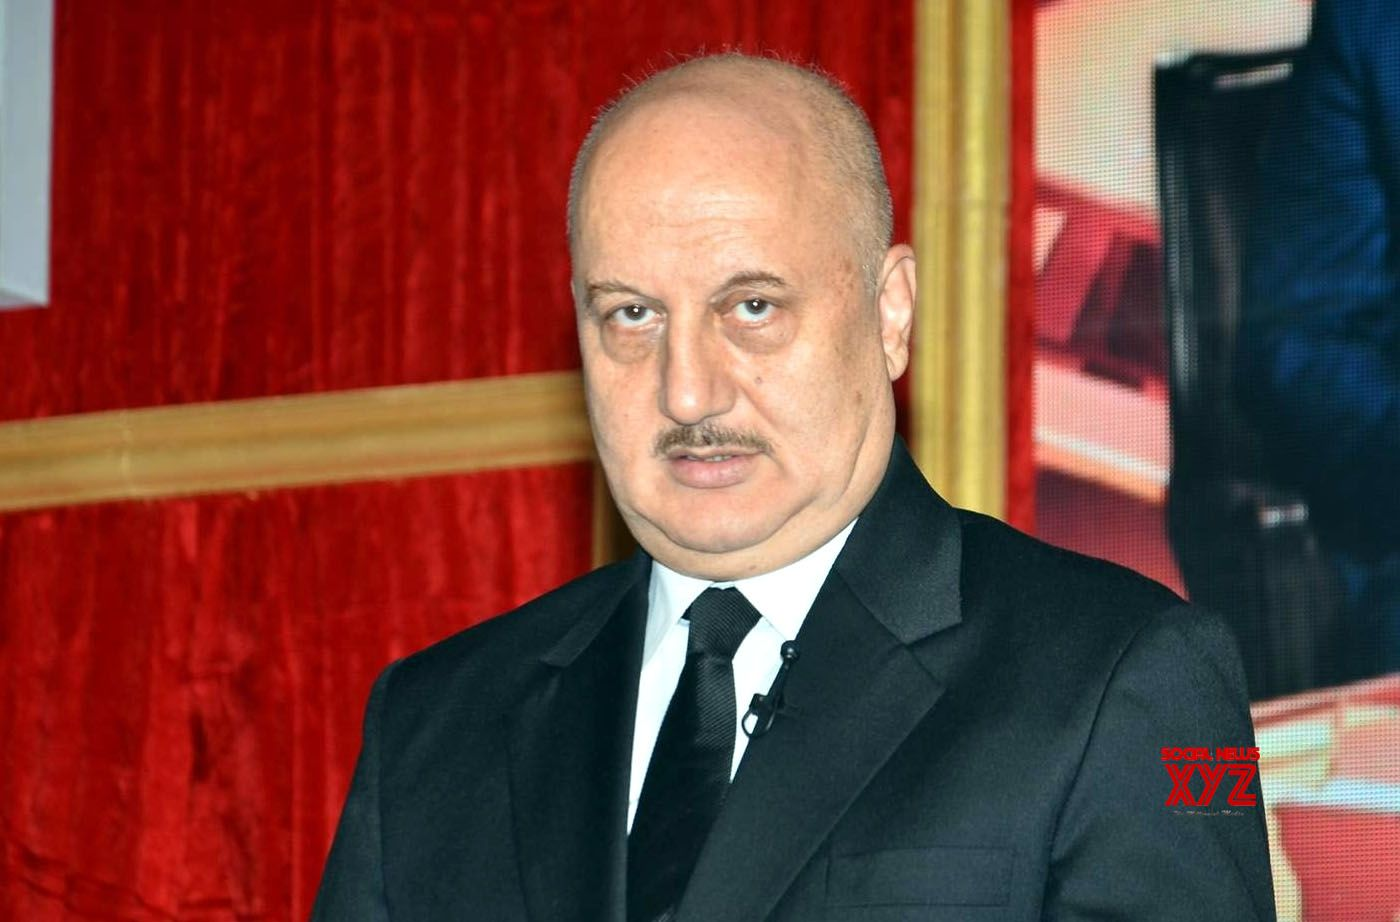 Anupam Kher's wig act leaves netizens in splits